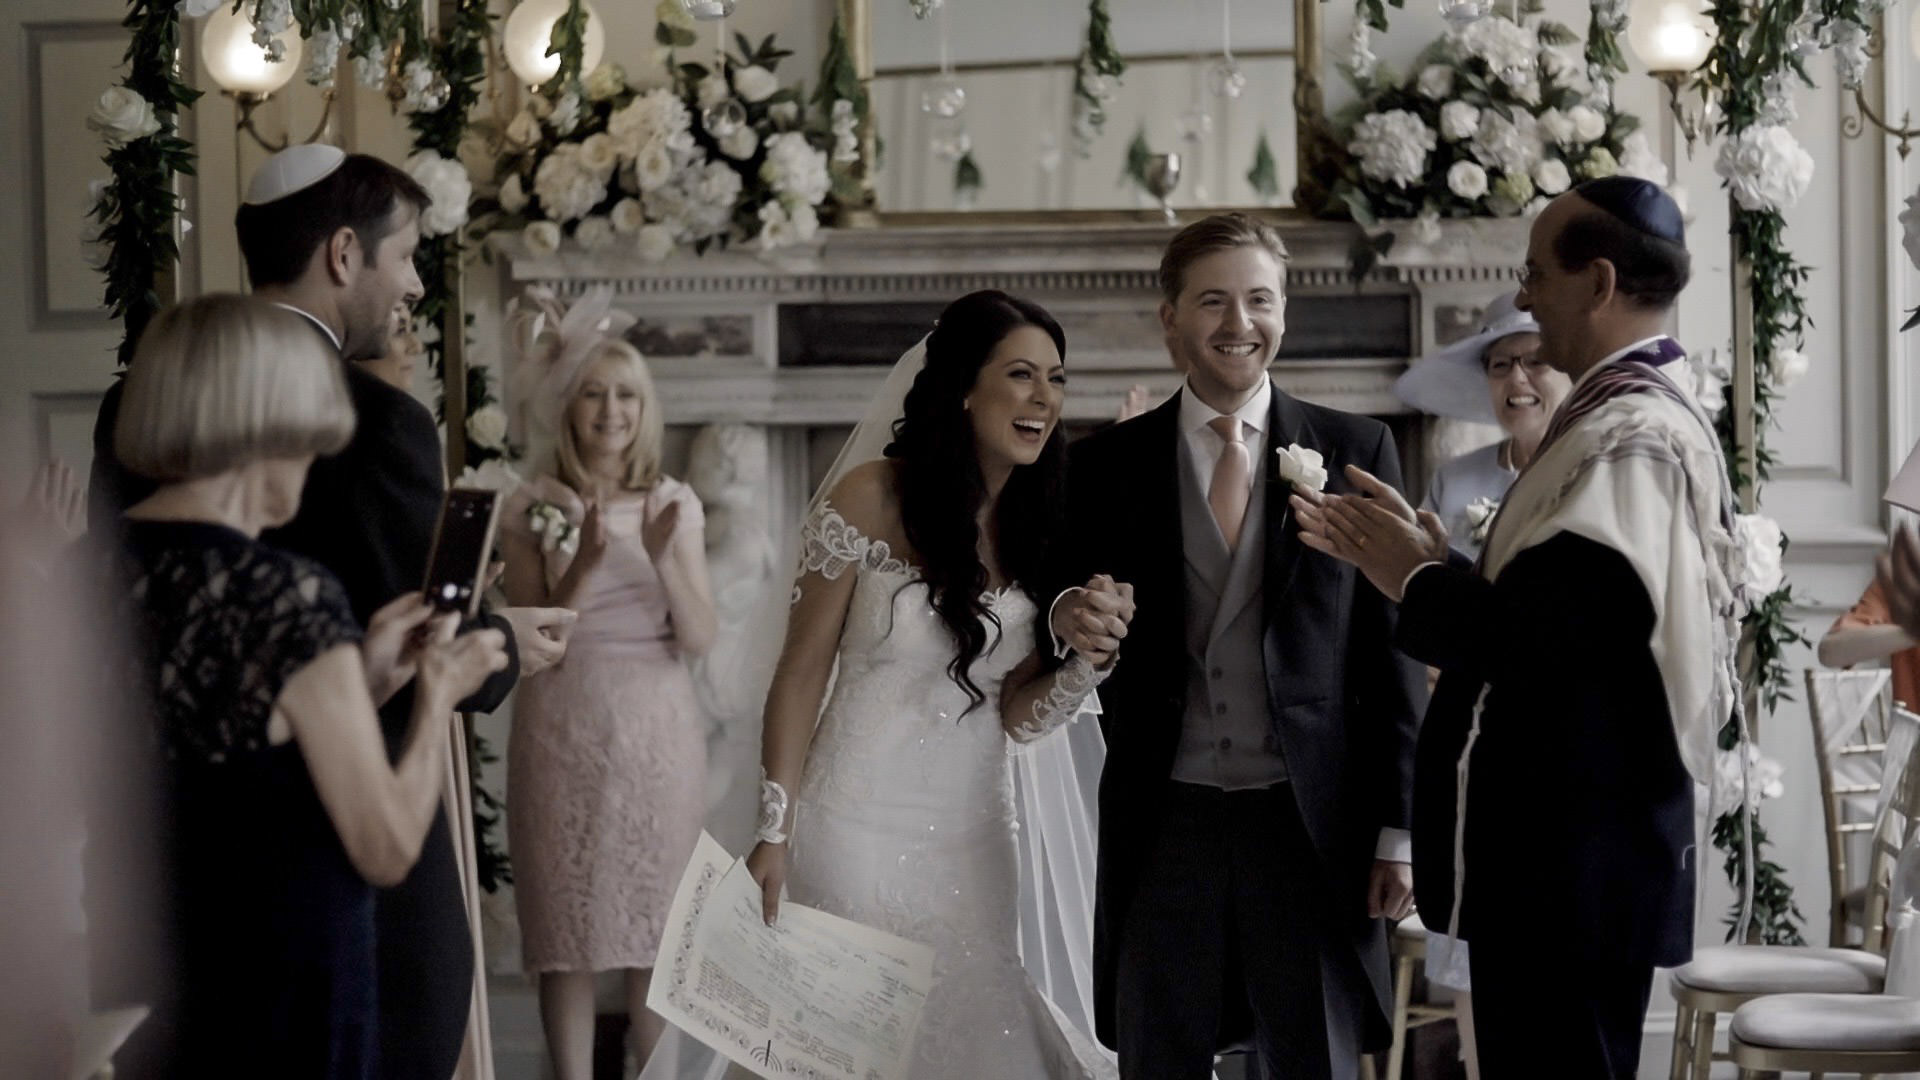 An Image from Natasha and Adam's Gosfield Hall Wedding Video showing the couple walking down the aisle.